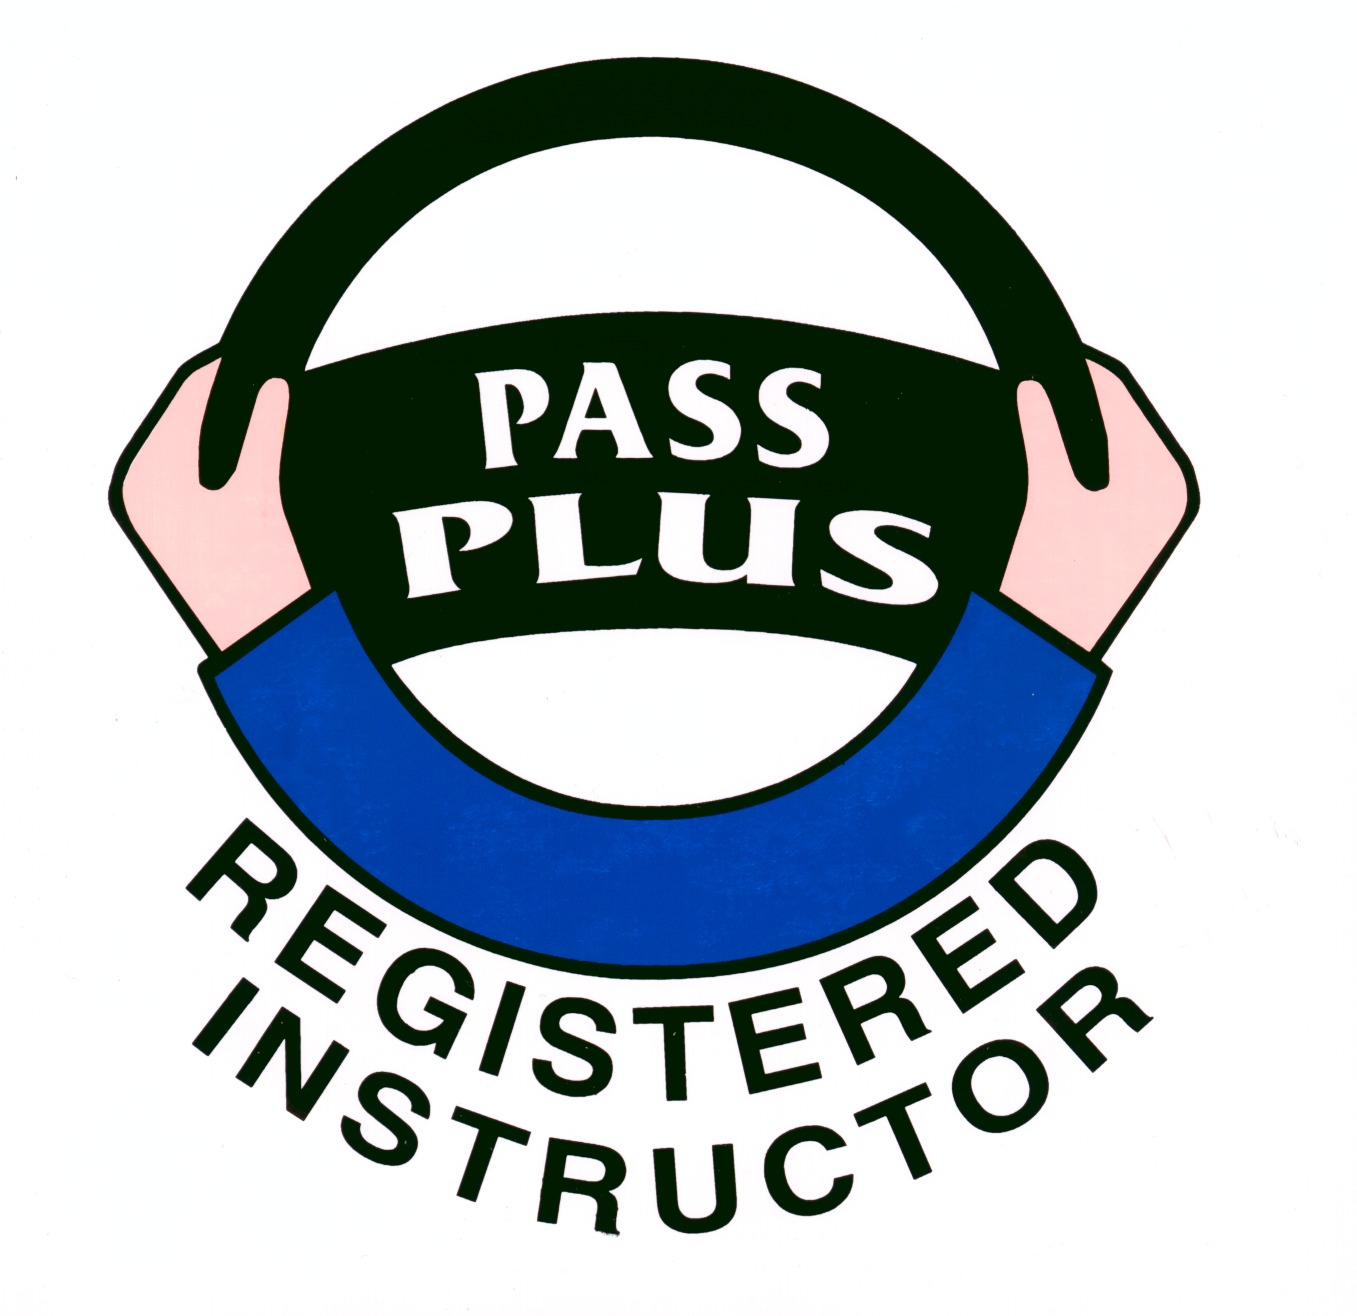 Pass Plus Scheme: Pros, Cons, Cost And Insurance Discounts